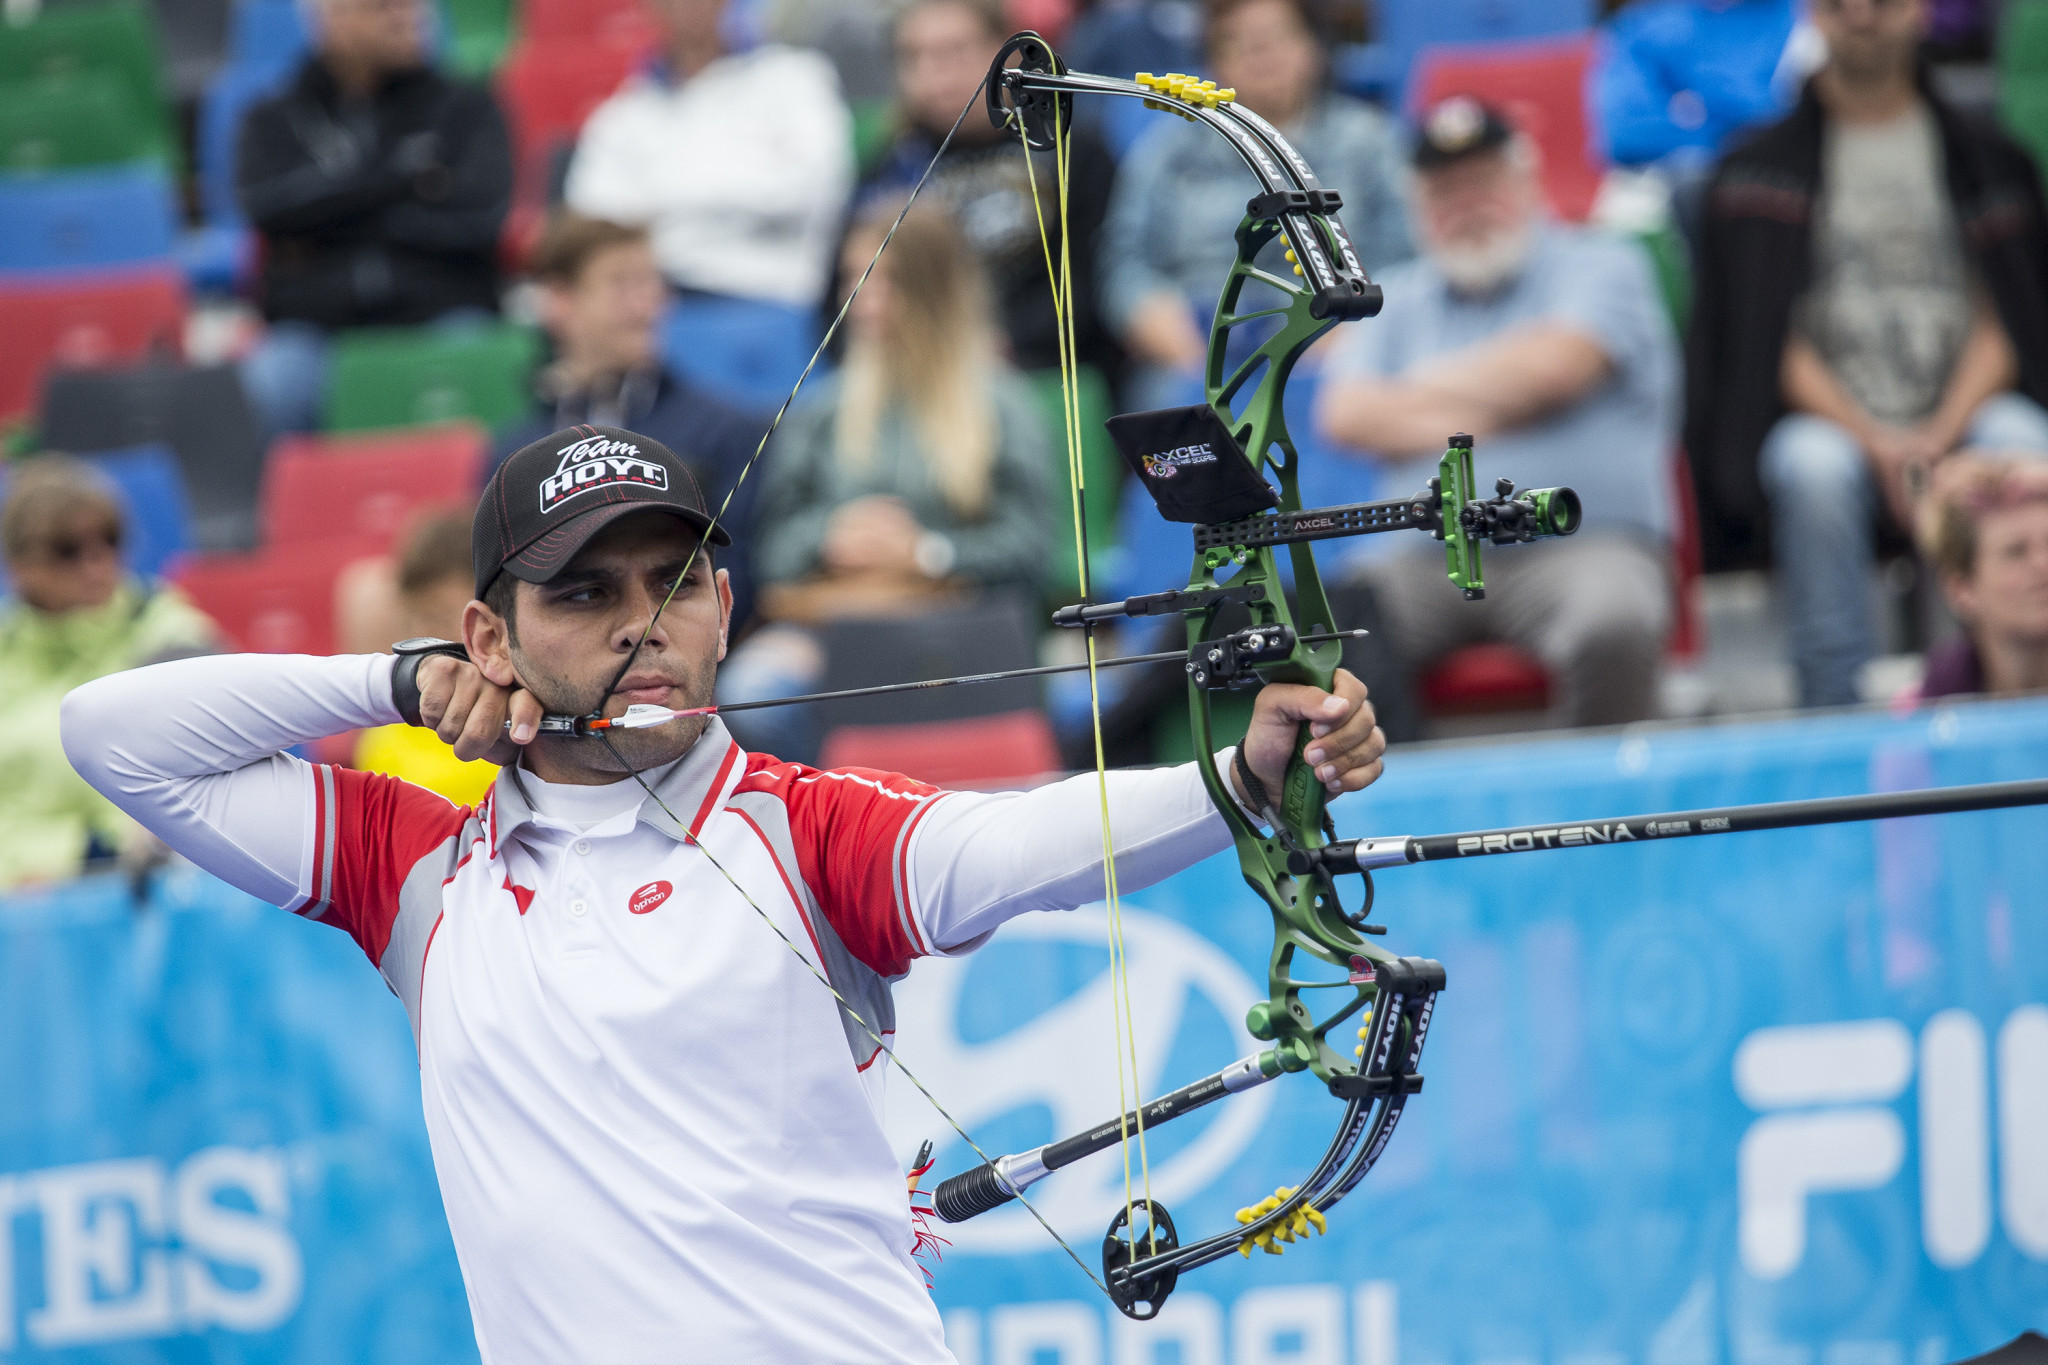 Demir Elmaagacli won the Archery World Cup title in 2015 ©Getty Images